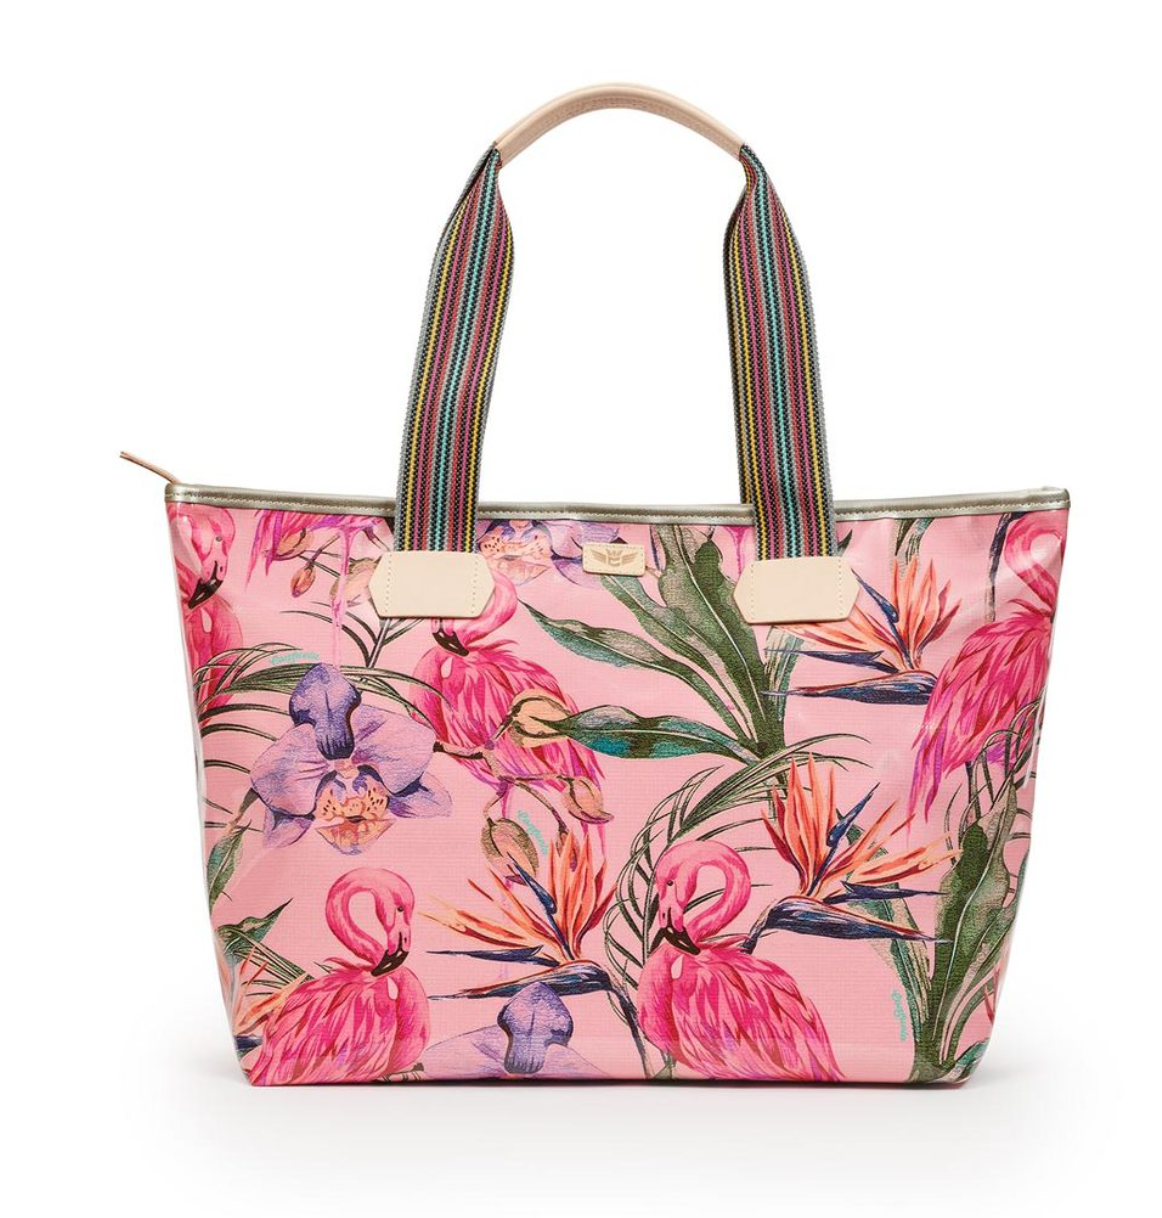 ZIPPER TOTE: BRYNN FLAMINGO - Molly's! A Chic and Unique Boutique